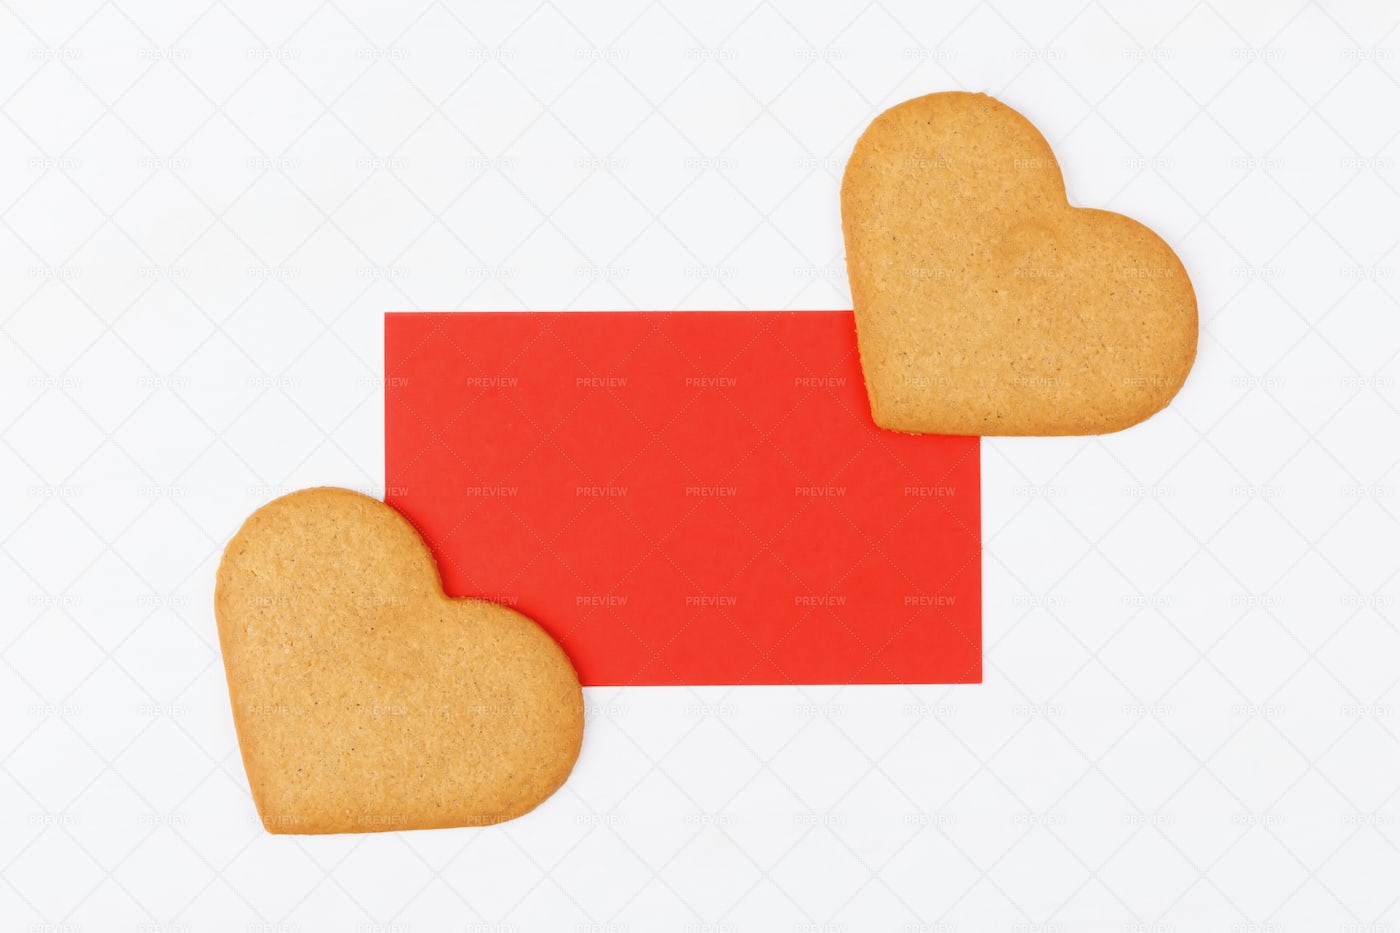 Greeting Card With Two Cookies: Stock Photos